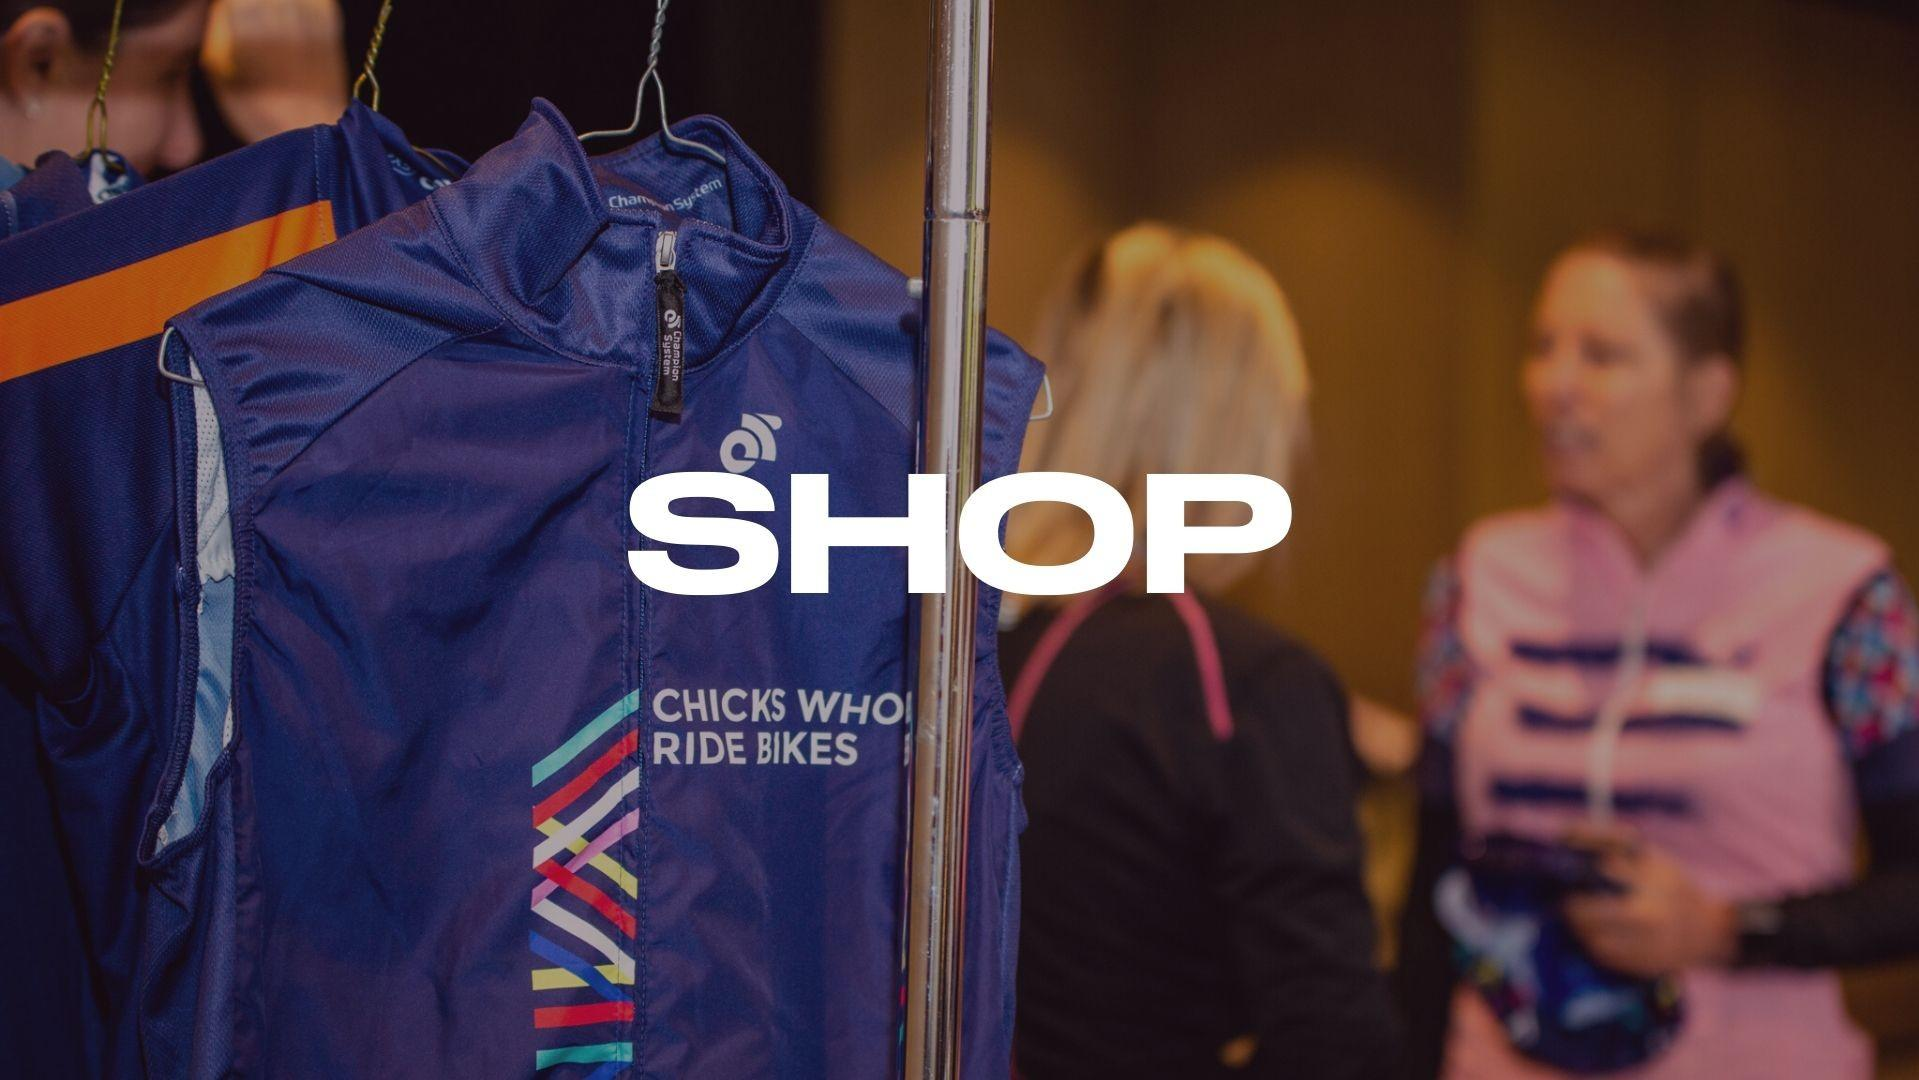 Shop women's cycling with Chicks Who Ride Bikes